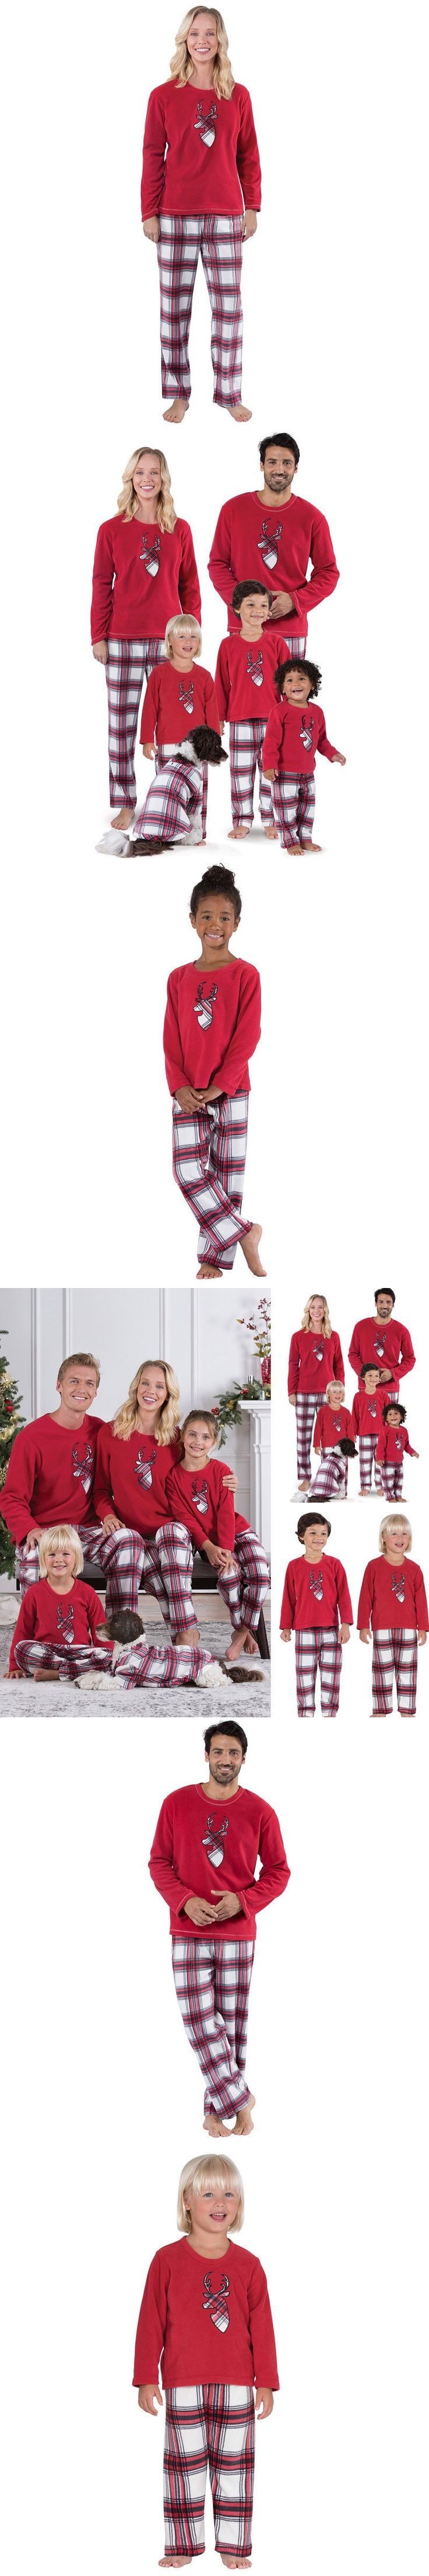 Family Matching Christmas Pajamas Set Deer Printing T Shirt Tops Bottom Striped Long Pants Women Baby Kids Deer Sleepwear